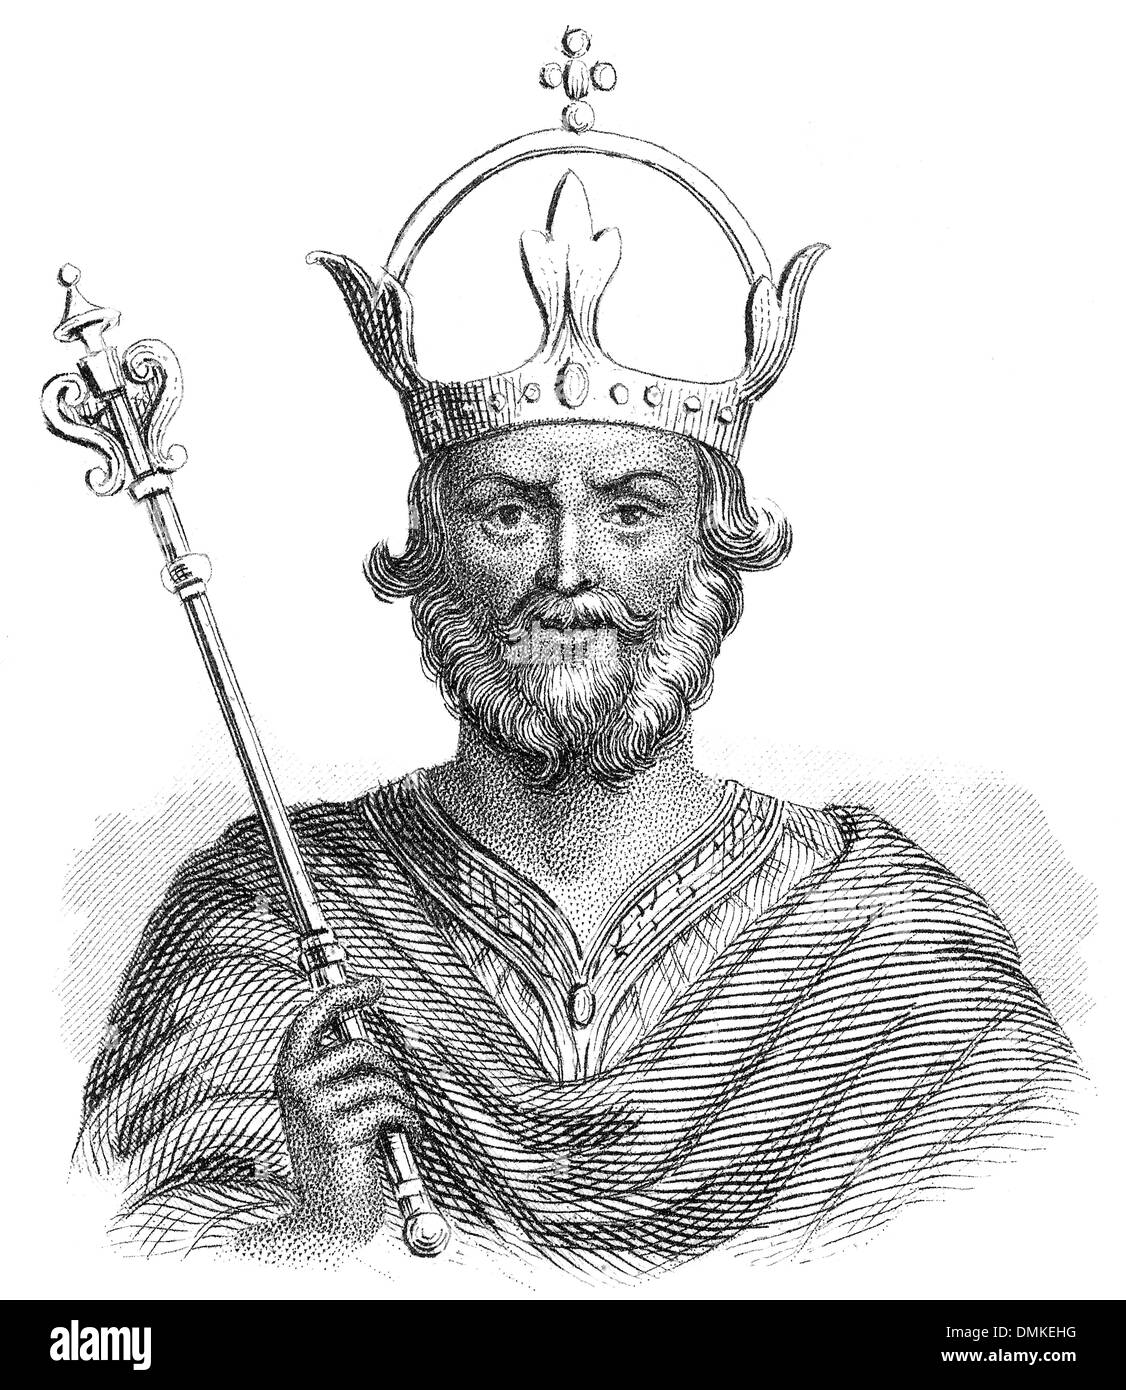 Henry IV, 1050 - 1106, King of the Germans - Stock Image